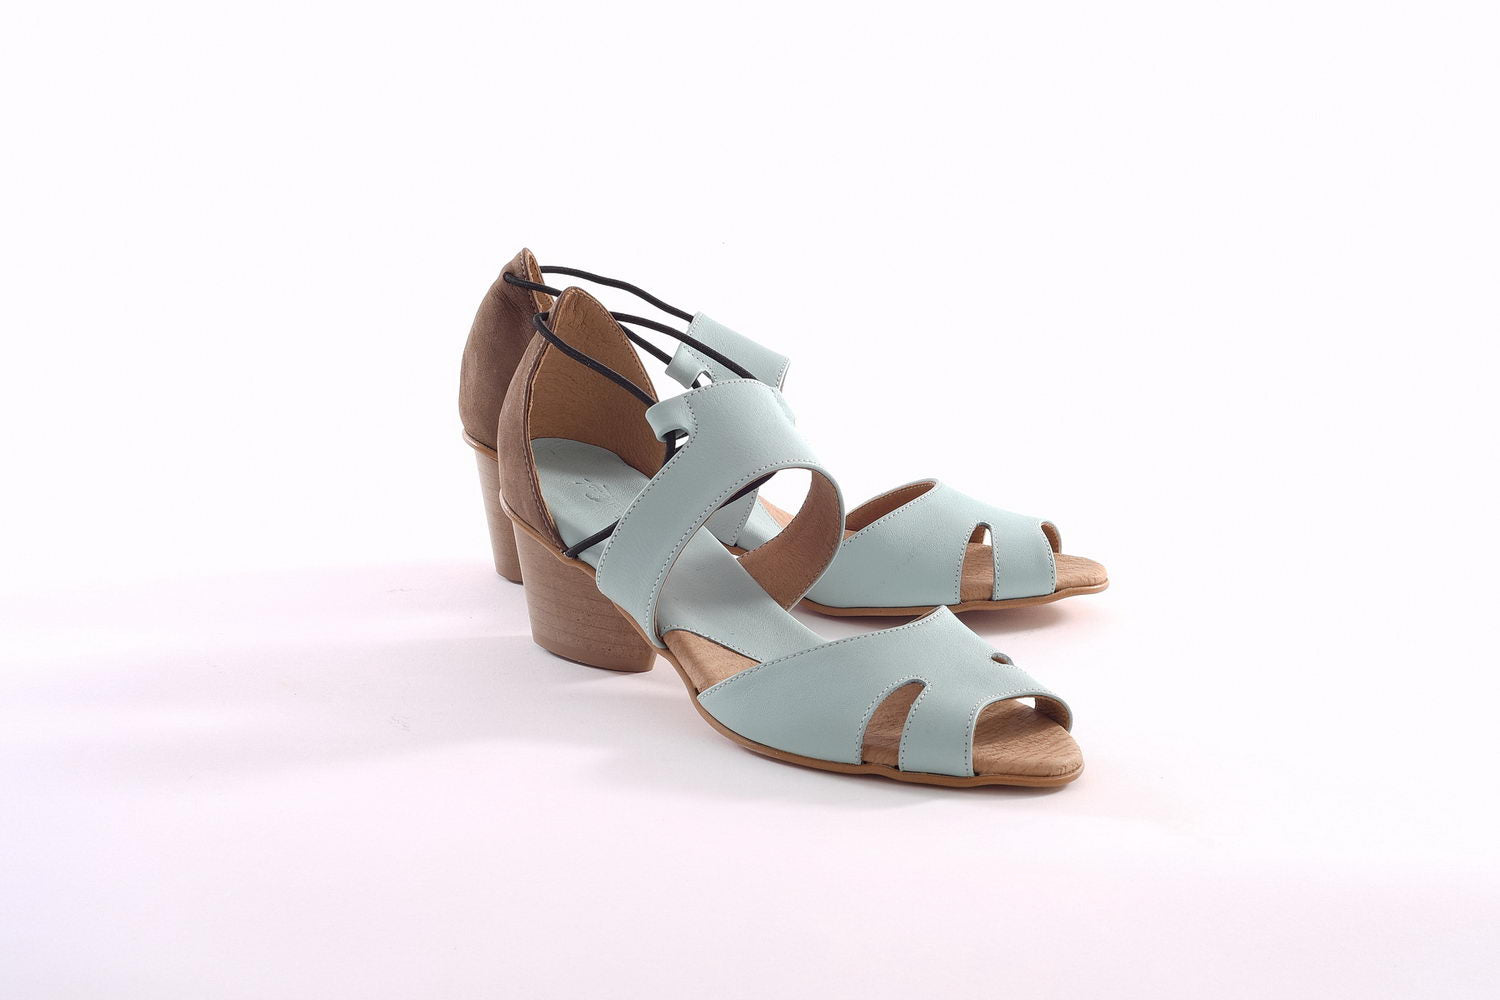 Mary Sandals - Pale Blue & Brown